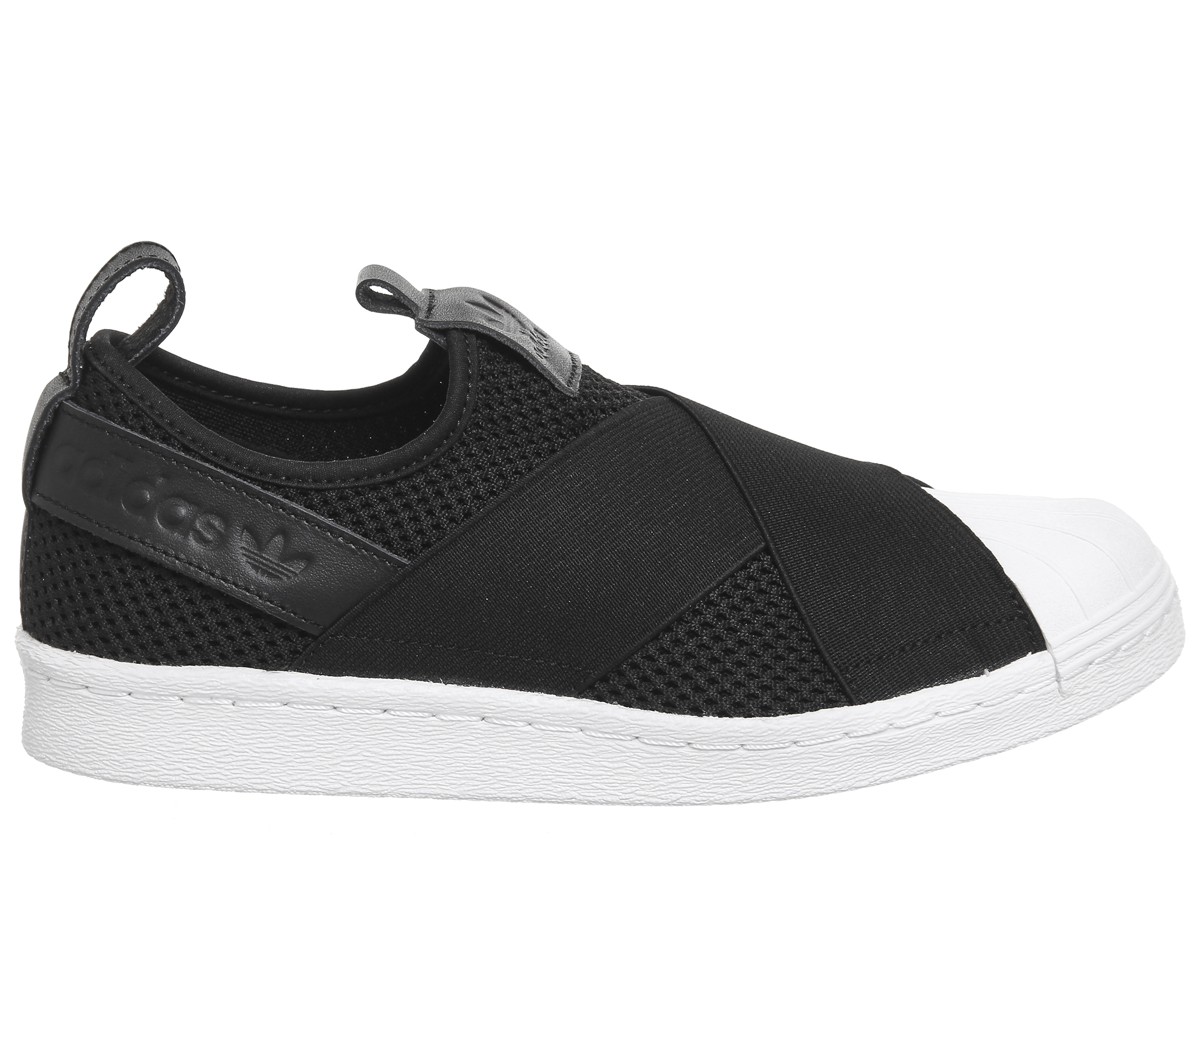 cf3f9ae0d73f Mens Adidas Superstar Slip On CORE BLACK WHITE Trainers Shoes ...